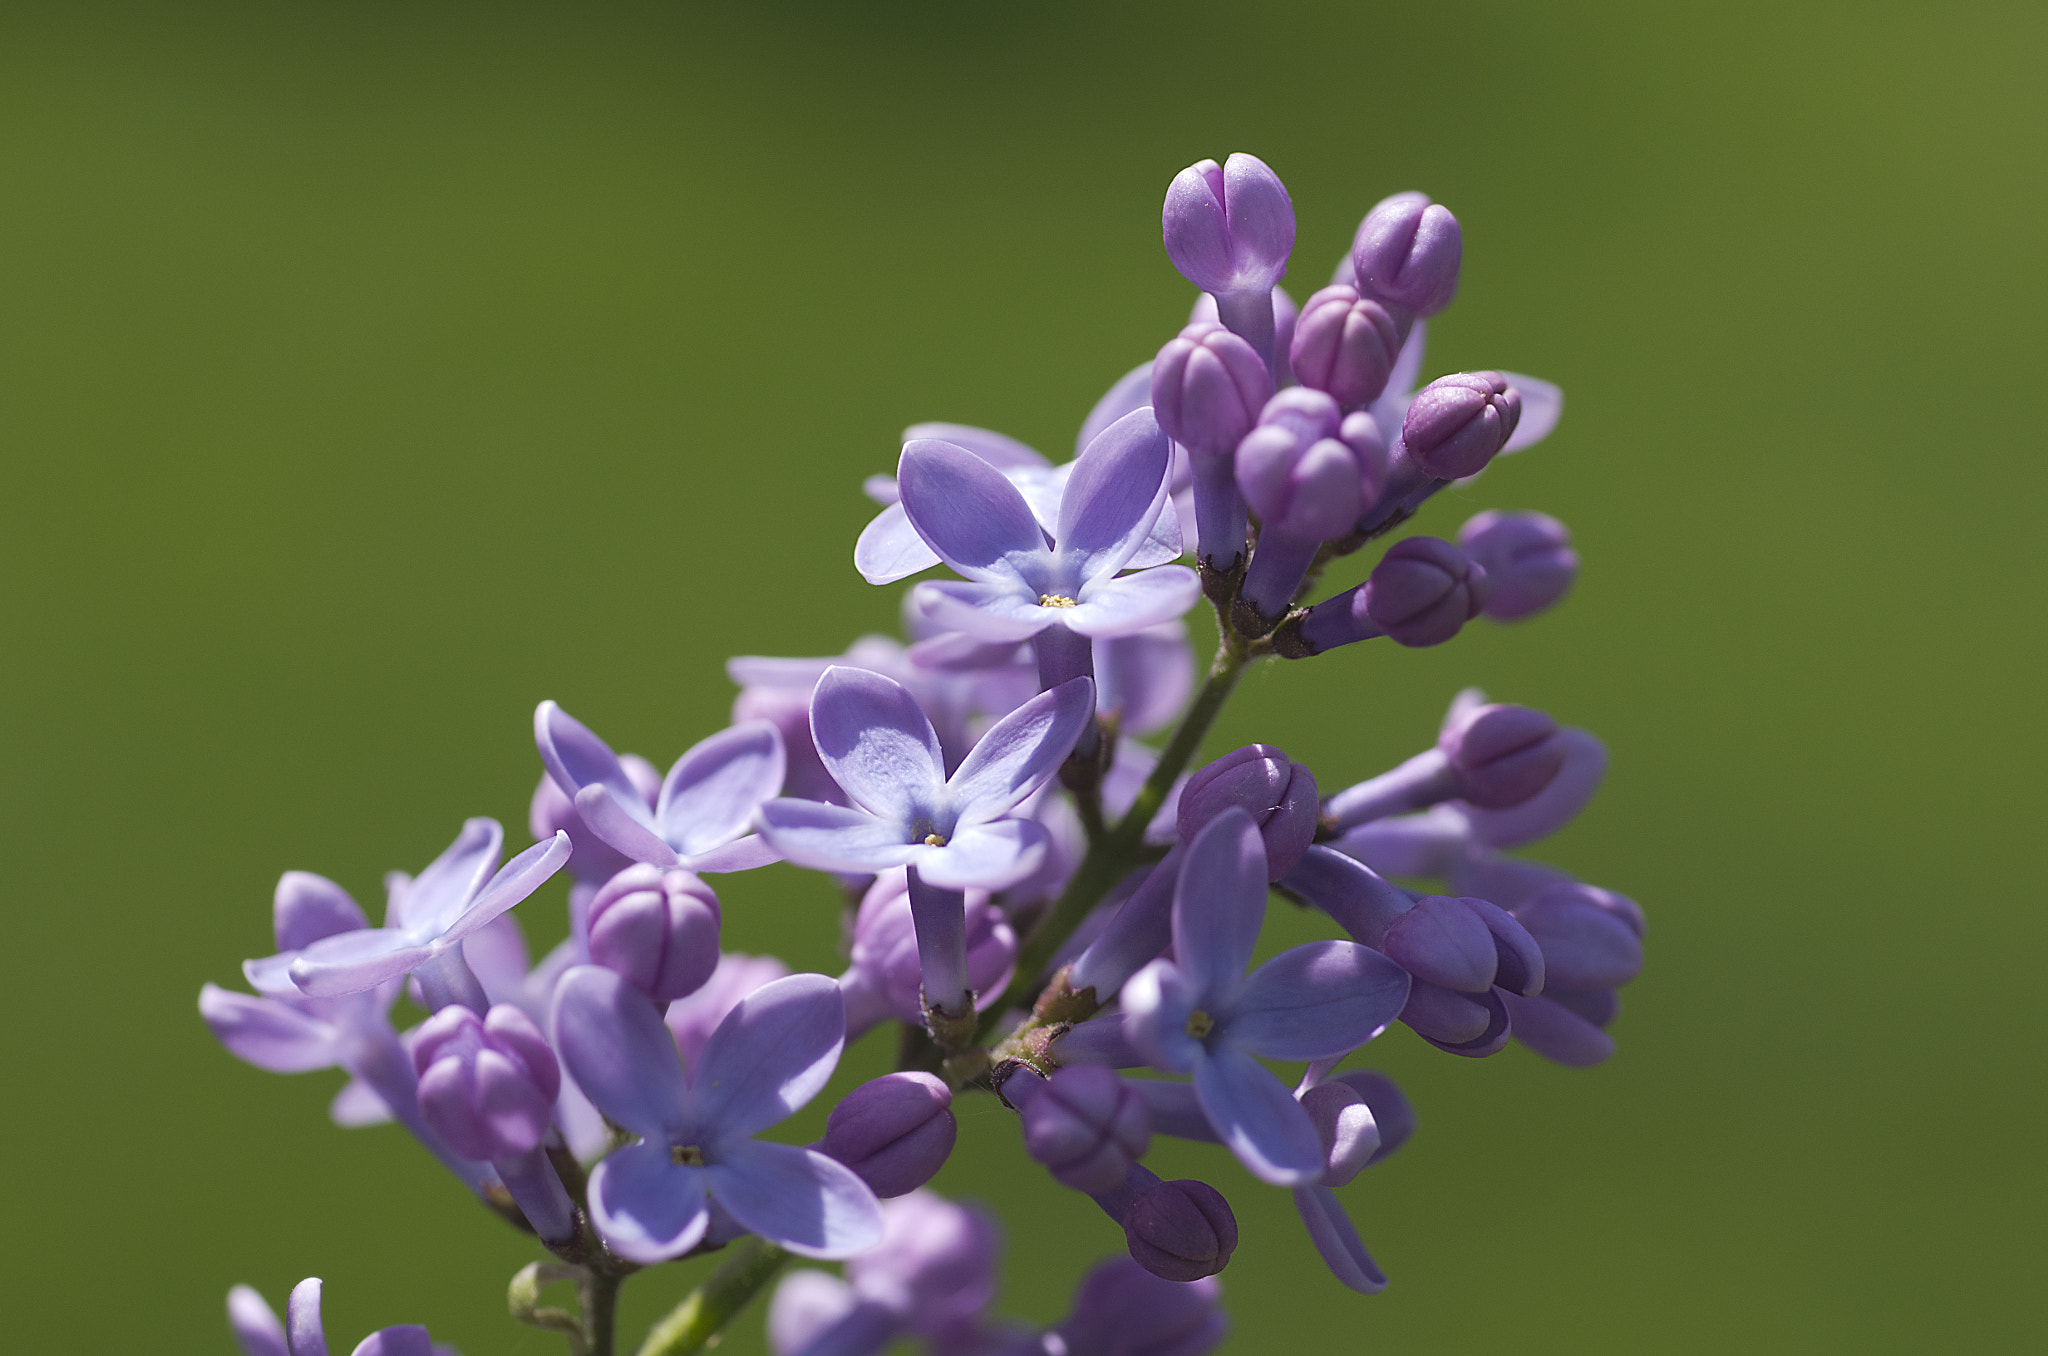 Photograph Scent of Lilacs! by Francisco Marty on 500px